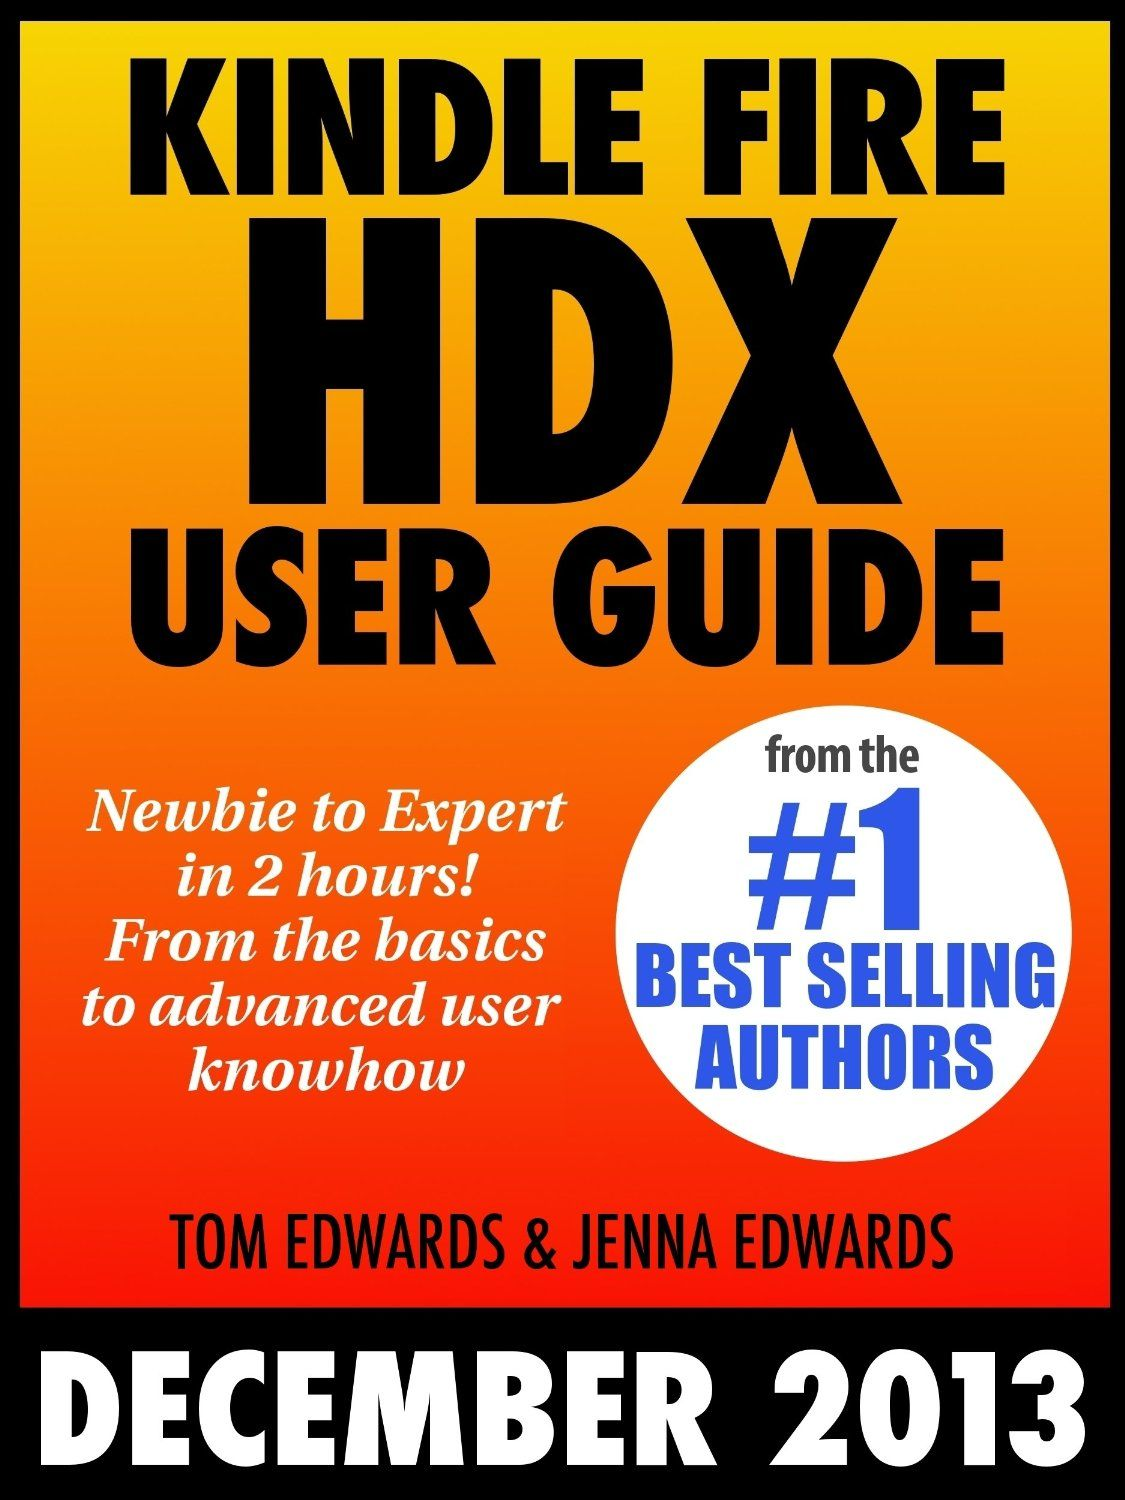 kindle 1 user guide user guide manual that easy to read u2022 rh wowomg co Kindle Fire 6 Amazon Kindle Fire HD 7